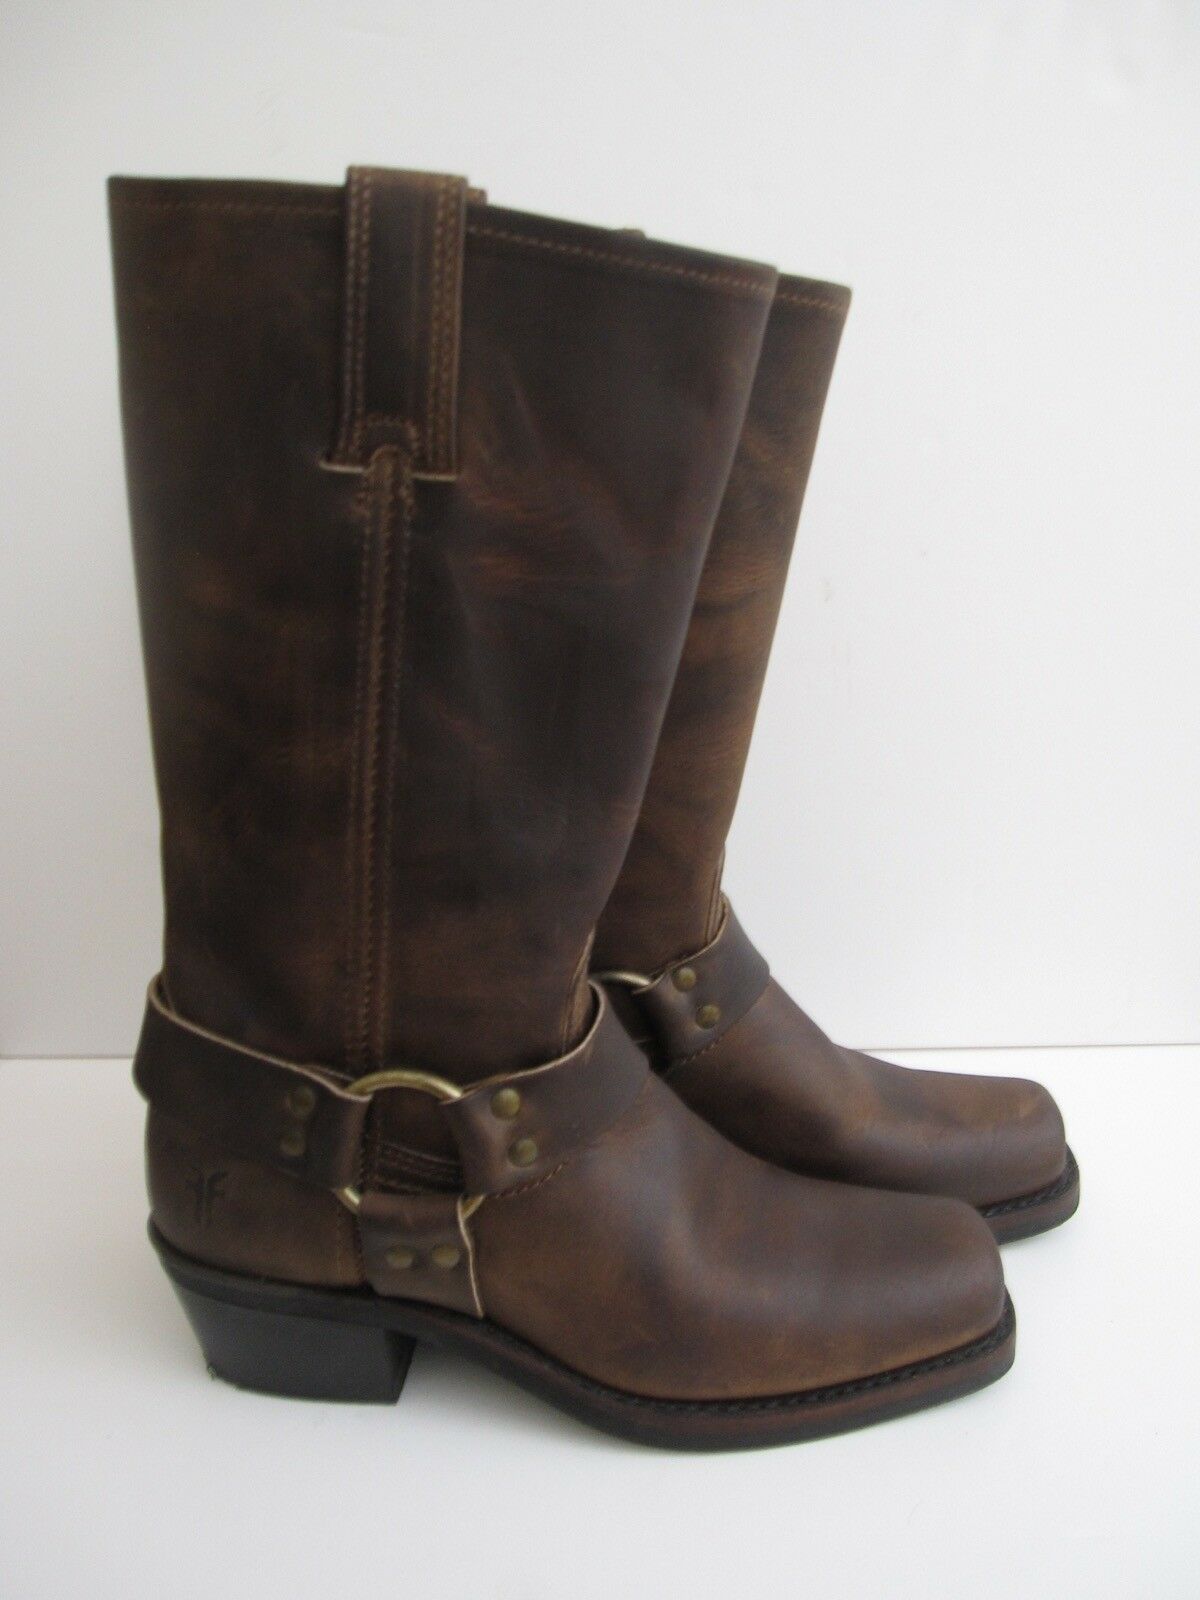 FRYE BROWN HARNESS MOTORCYCLE BOOTS 77300 6.5 CLASSIC REDUCED